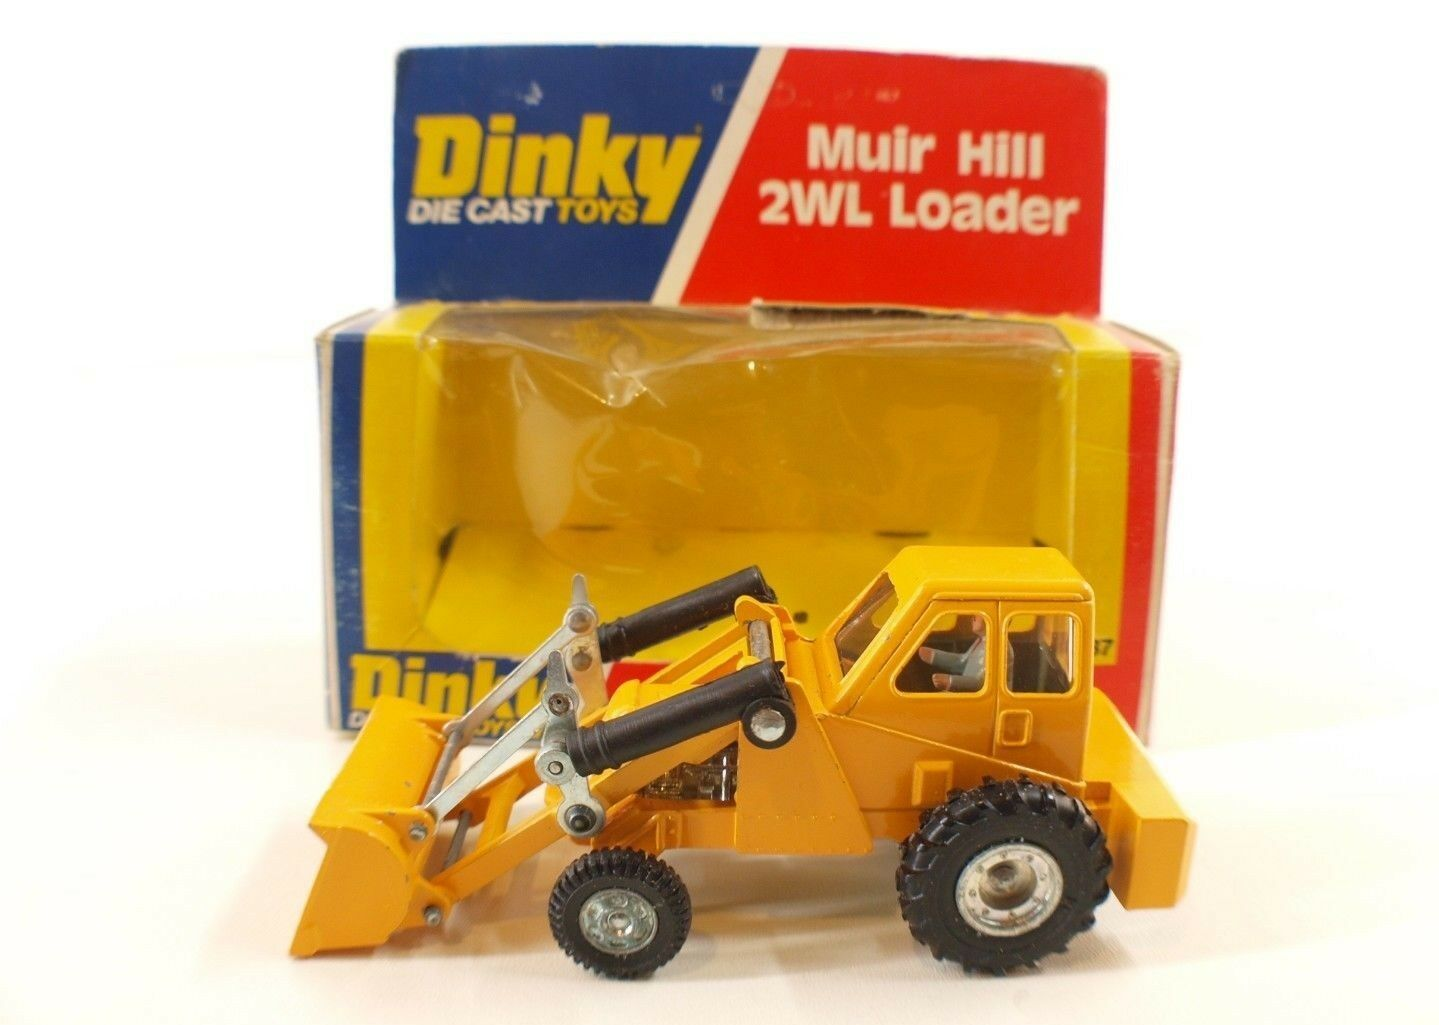 Dinky Toys GB n.437 Muir-Hill 2wl bearing Tractor New in Box MIB